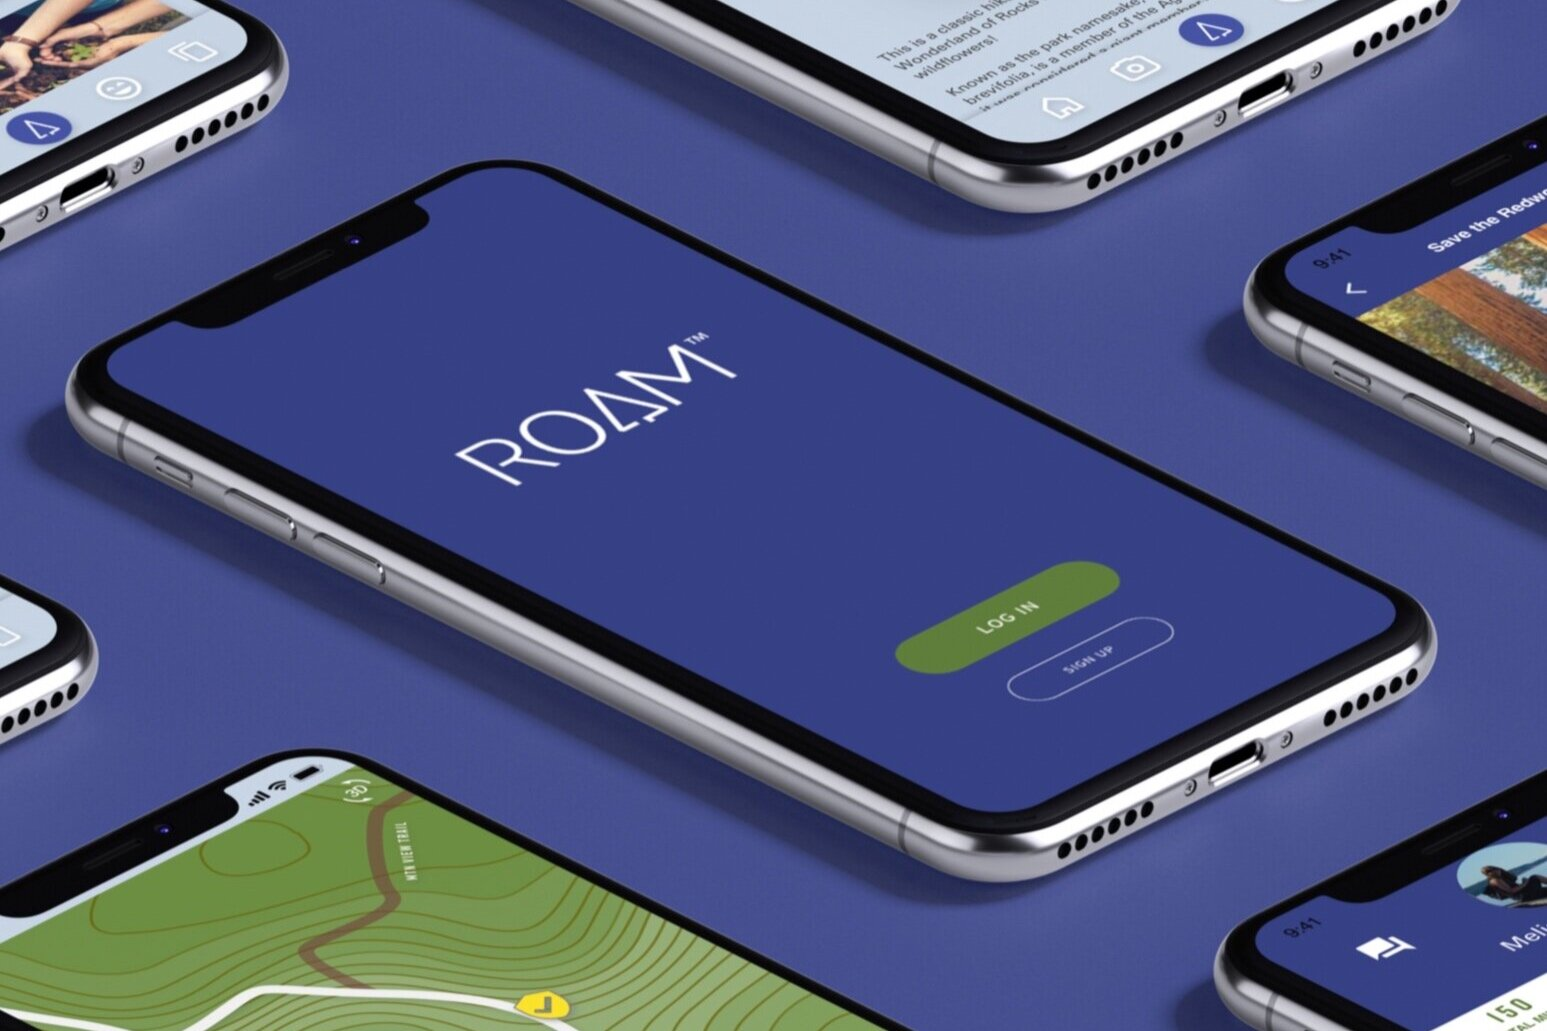 ROAM - Funding parks one mile at a time